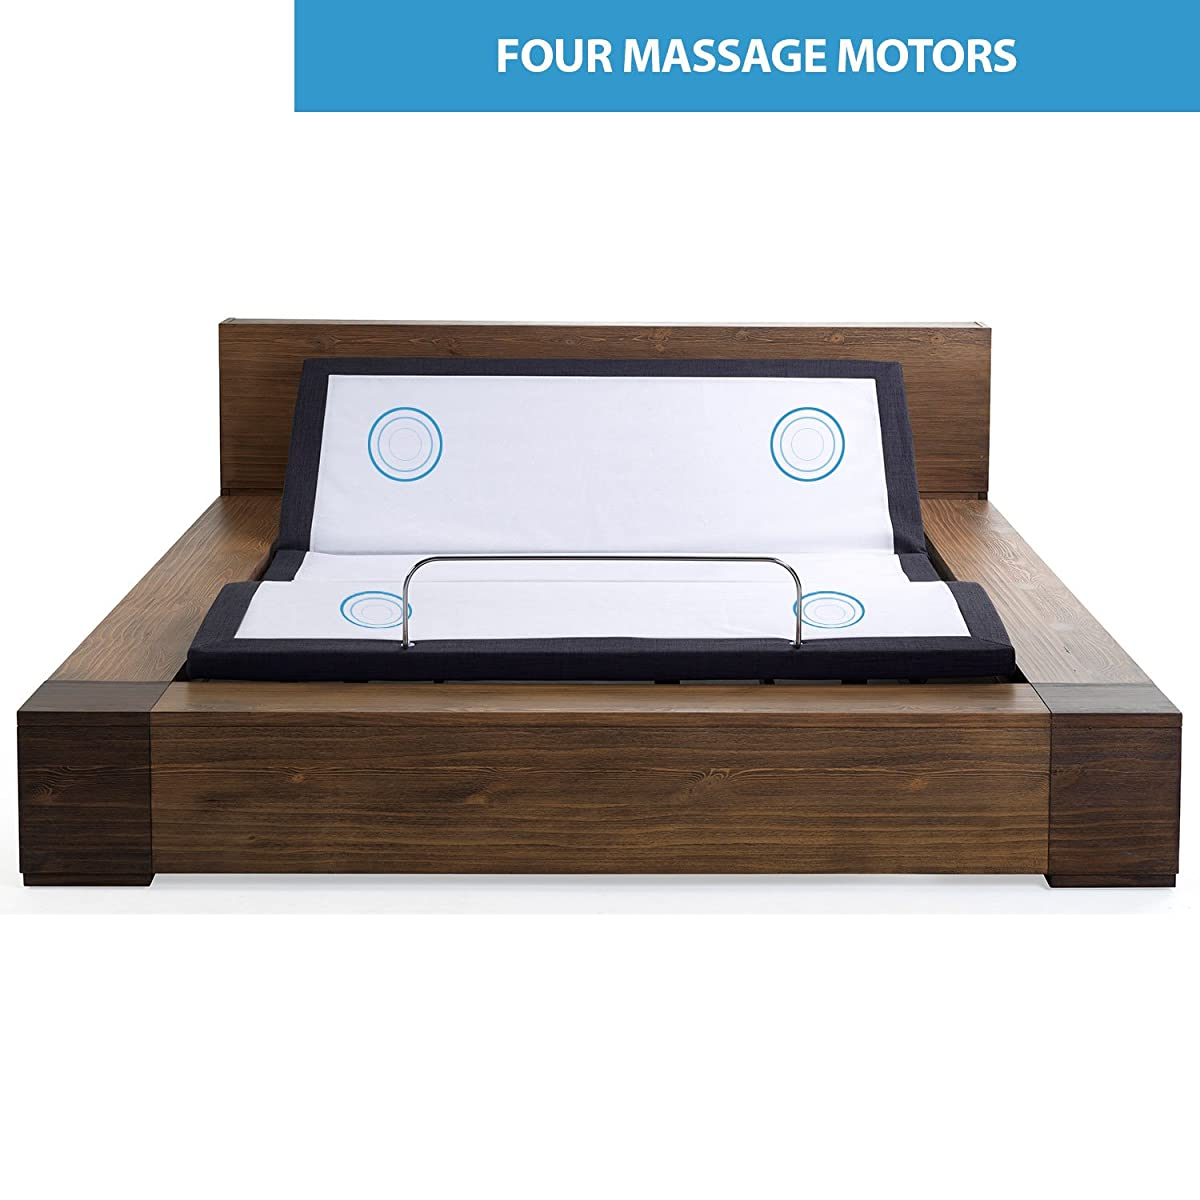 Queen Adjustable Bed Frame with Massage, Anti-Snore, Zero Gravity, Dual USB Charging Station, Under Bed Nightlight, Wireless Remote Head and Foot Incline and No Tools Required Assembly